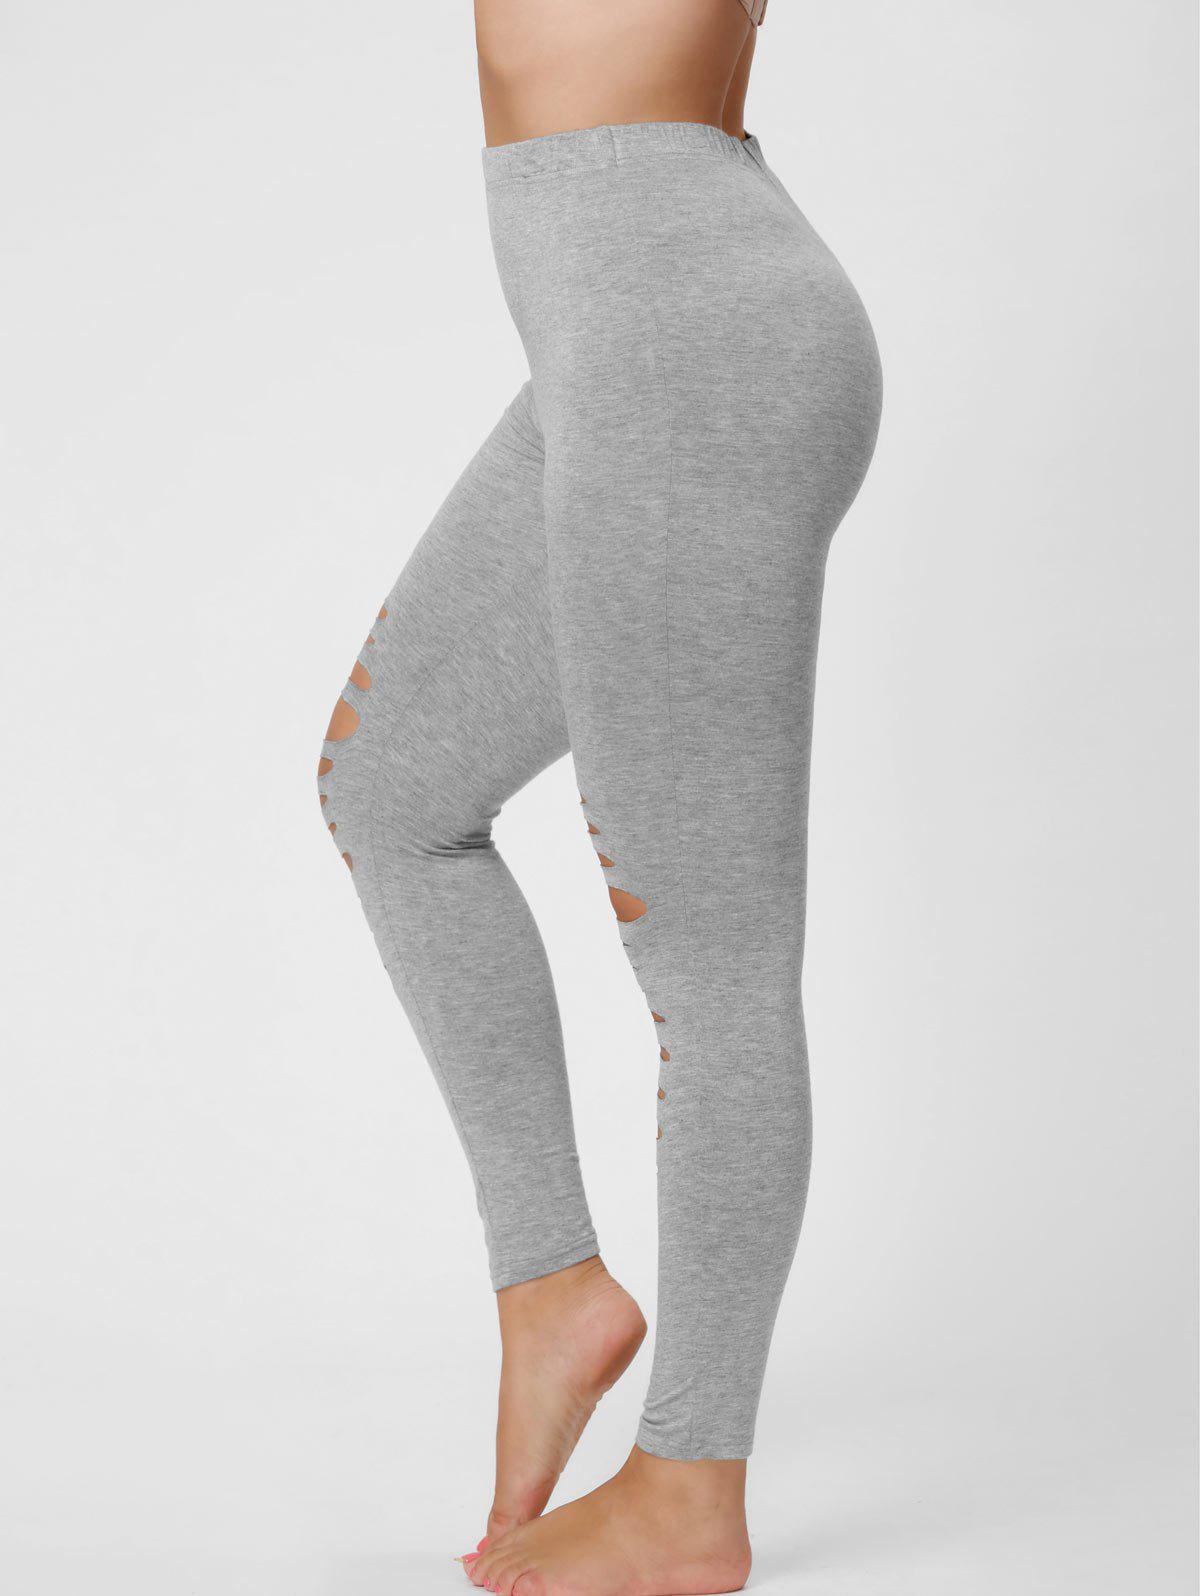 Plus Size Ripped Fitted Leggings - GRAY 4XL